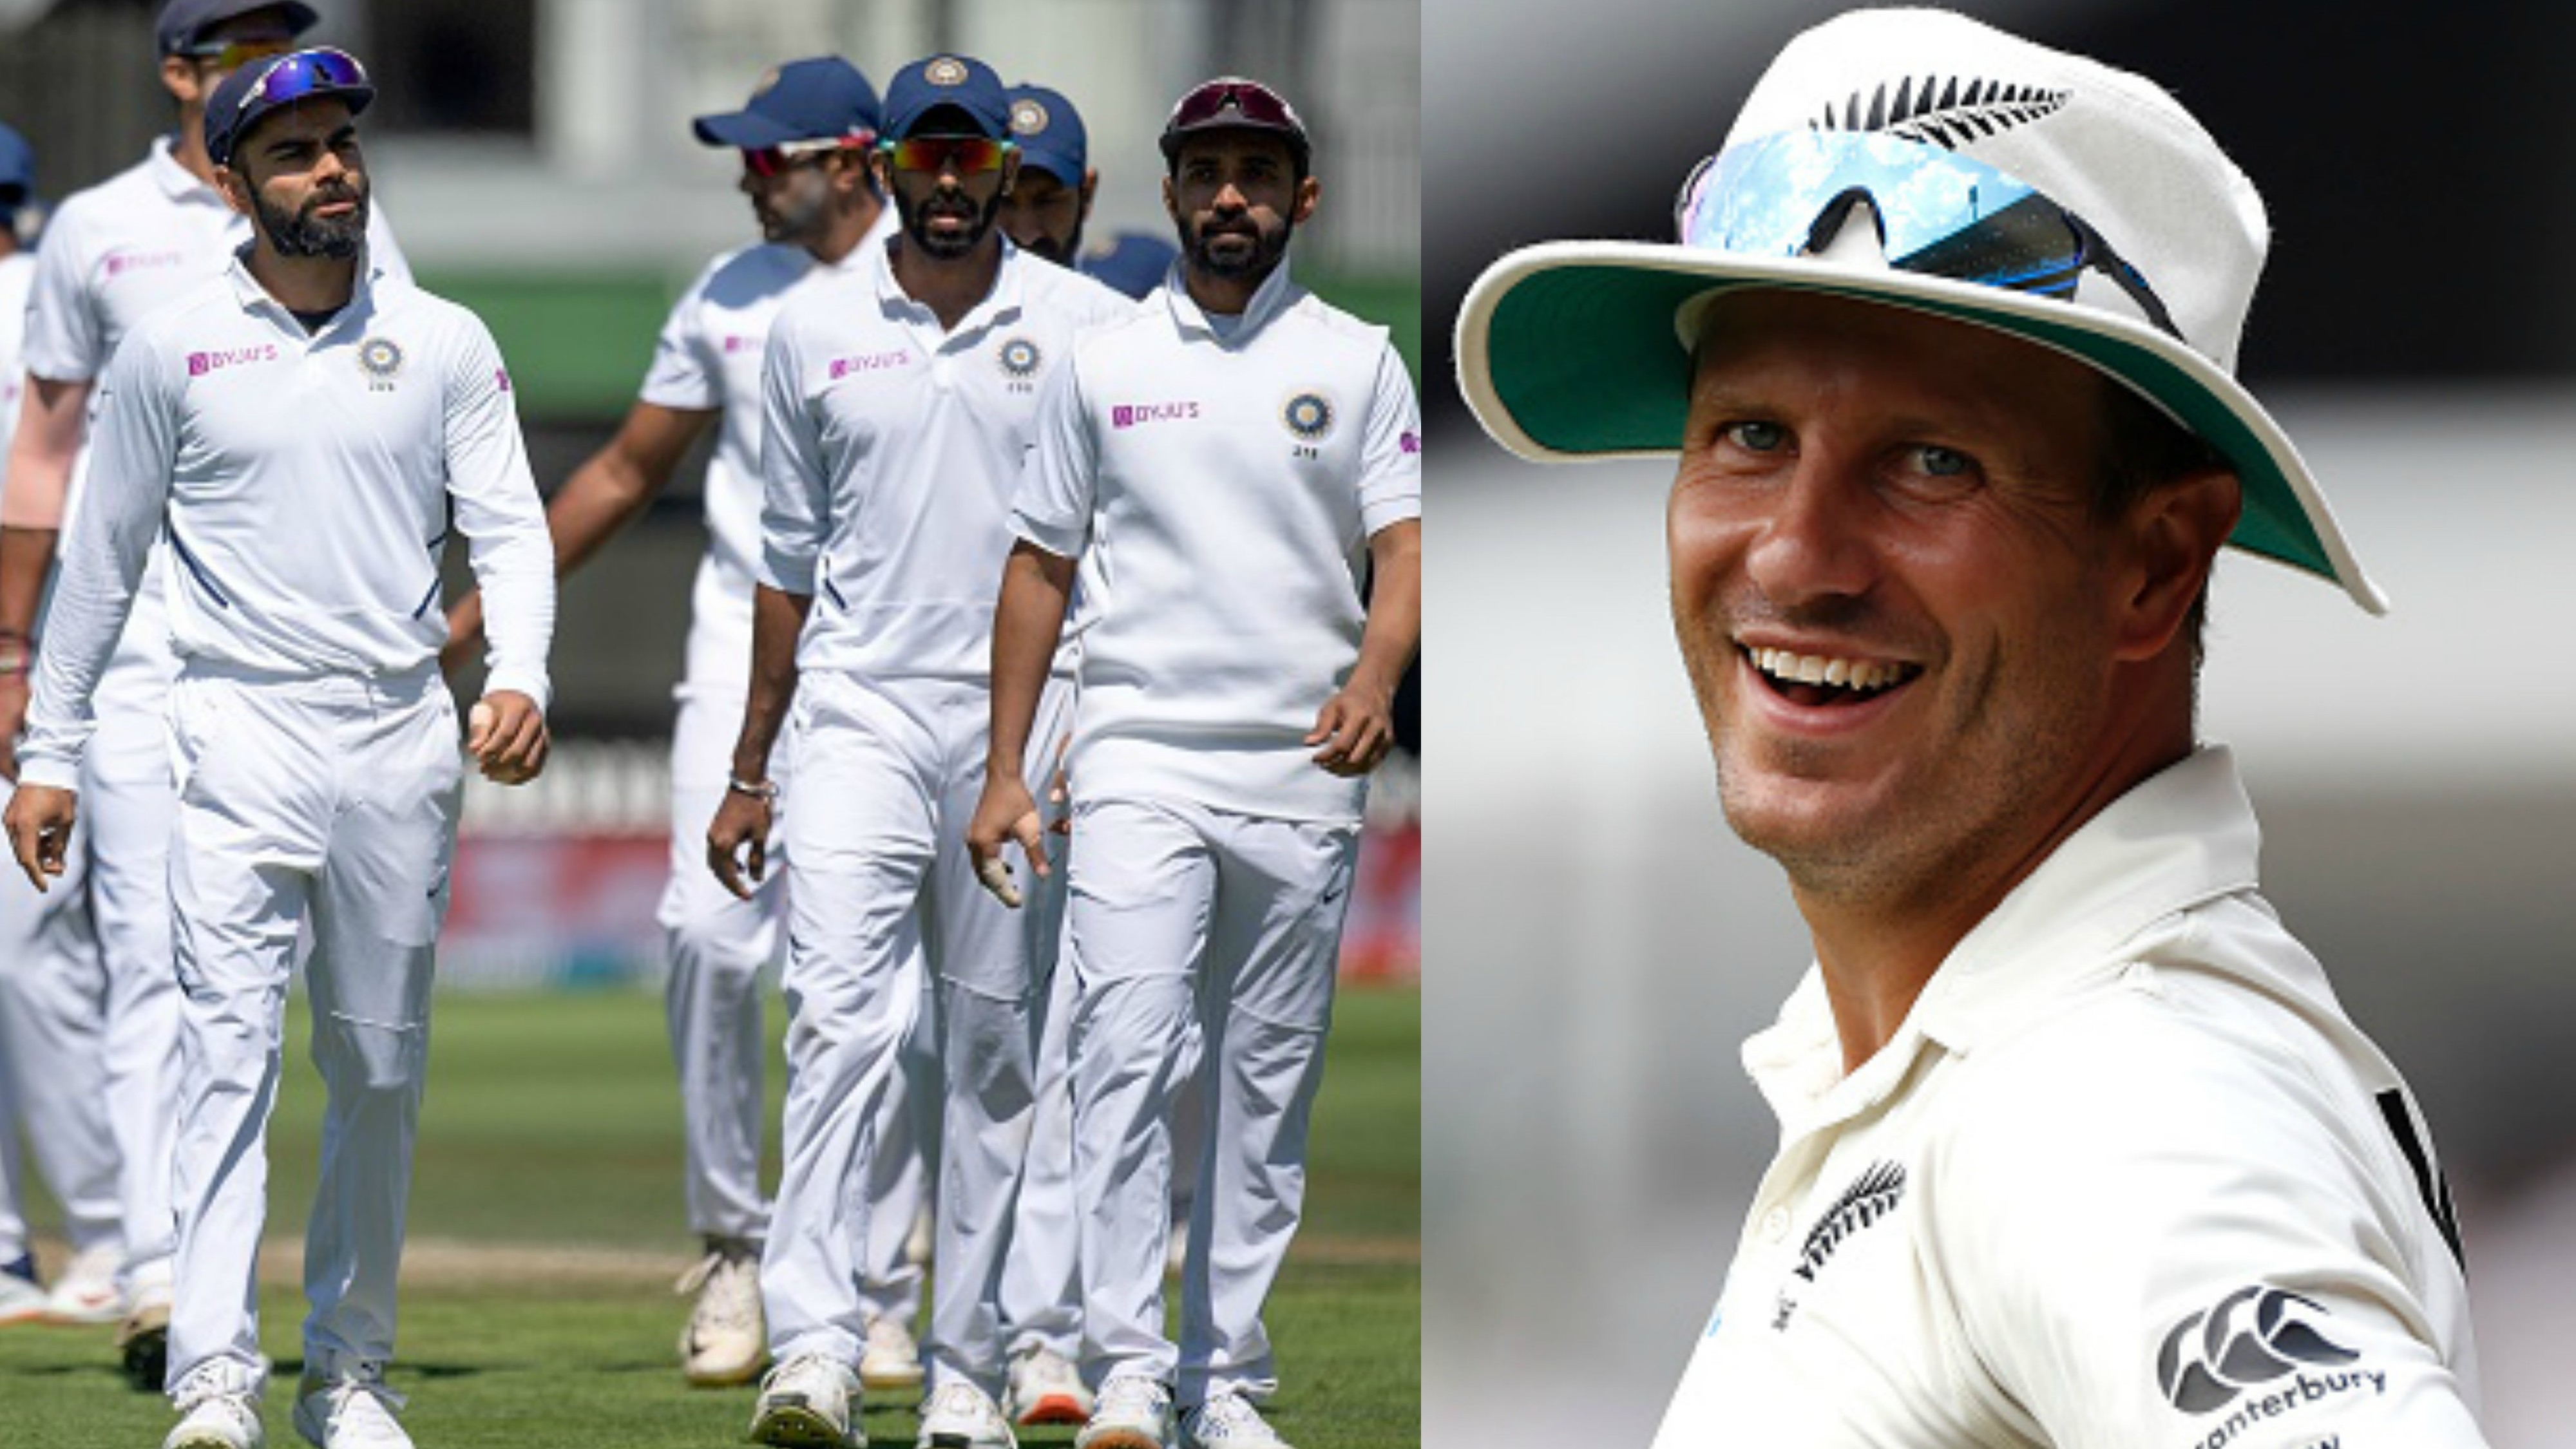 NZ v IND 2020: Neil Wagner says it will be tough for India to comeback on